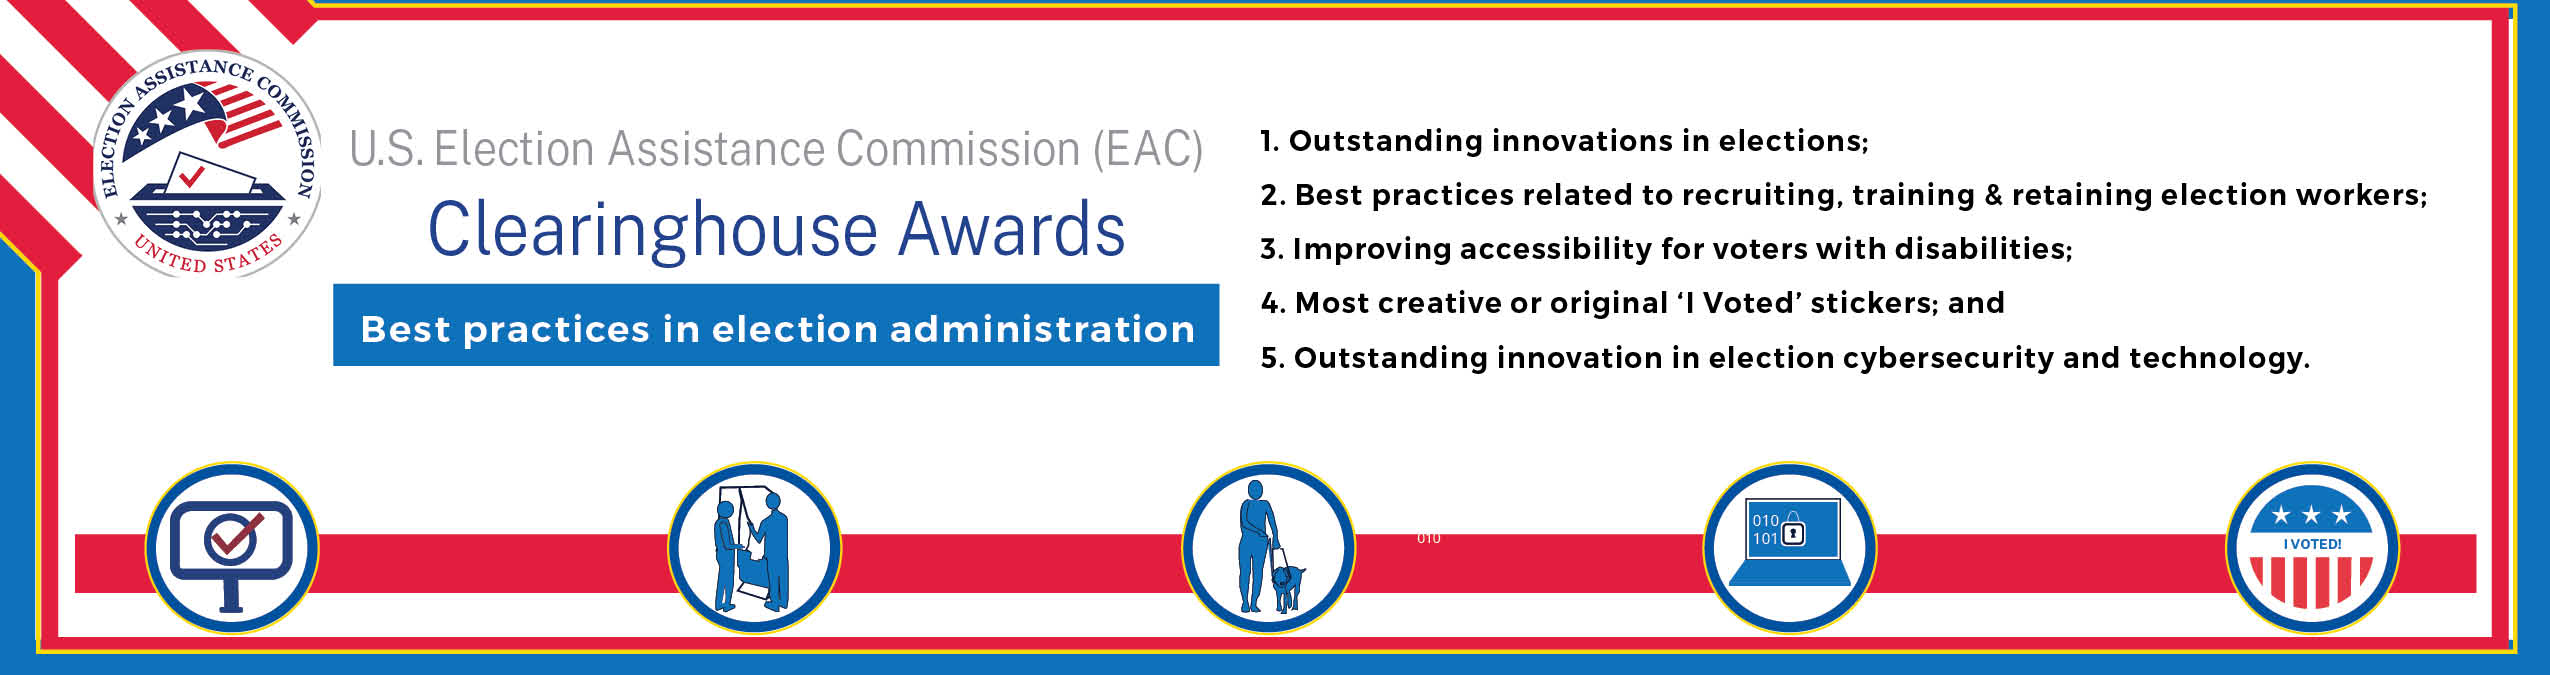 EAC 2020 Clearinghouse Awards: 1. Outstanding innovations in elections; 2. Best practices related to recruiting, training & retaining election workers;  3. Improving accessibility for voters with disabilities;  4. Special 2019 category: Most creative or original 'I Voted' stickers and 5. Outstanding innovation in election cybersecurity and technology.